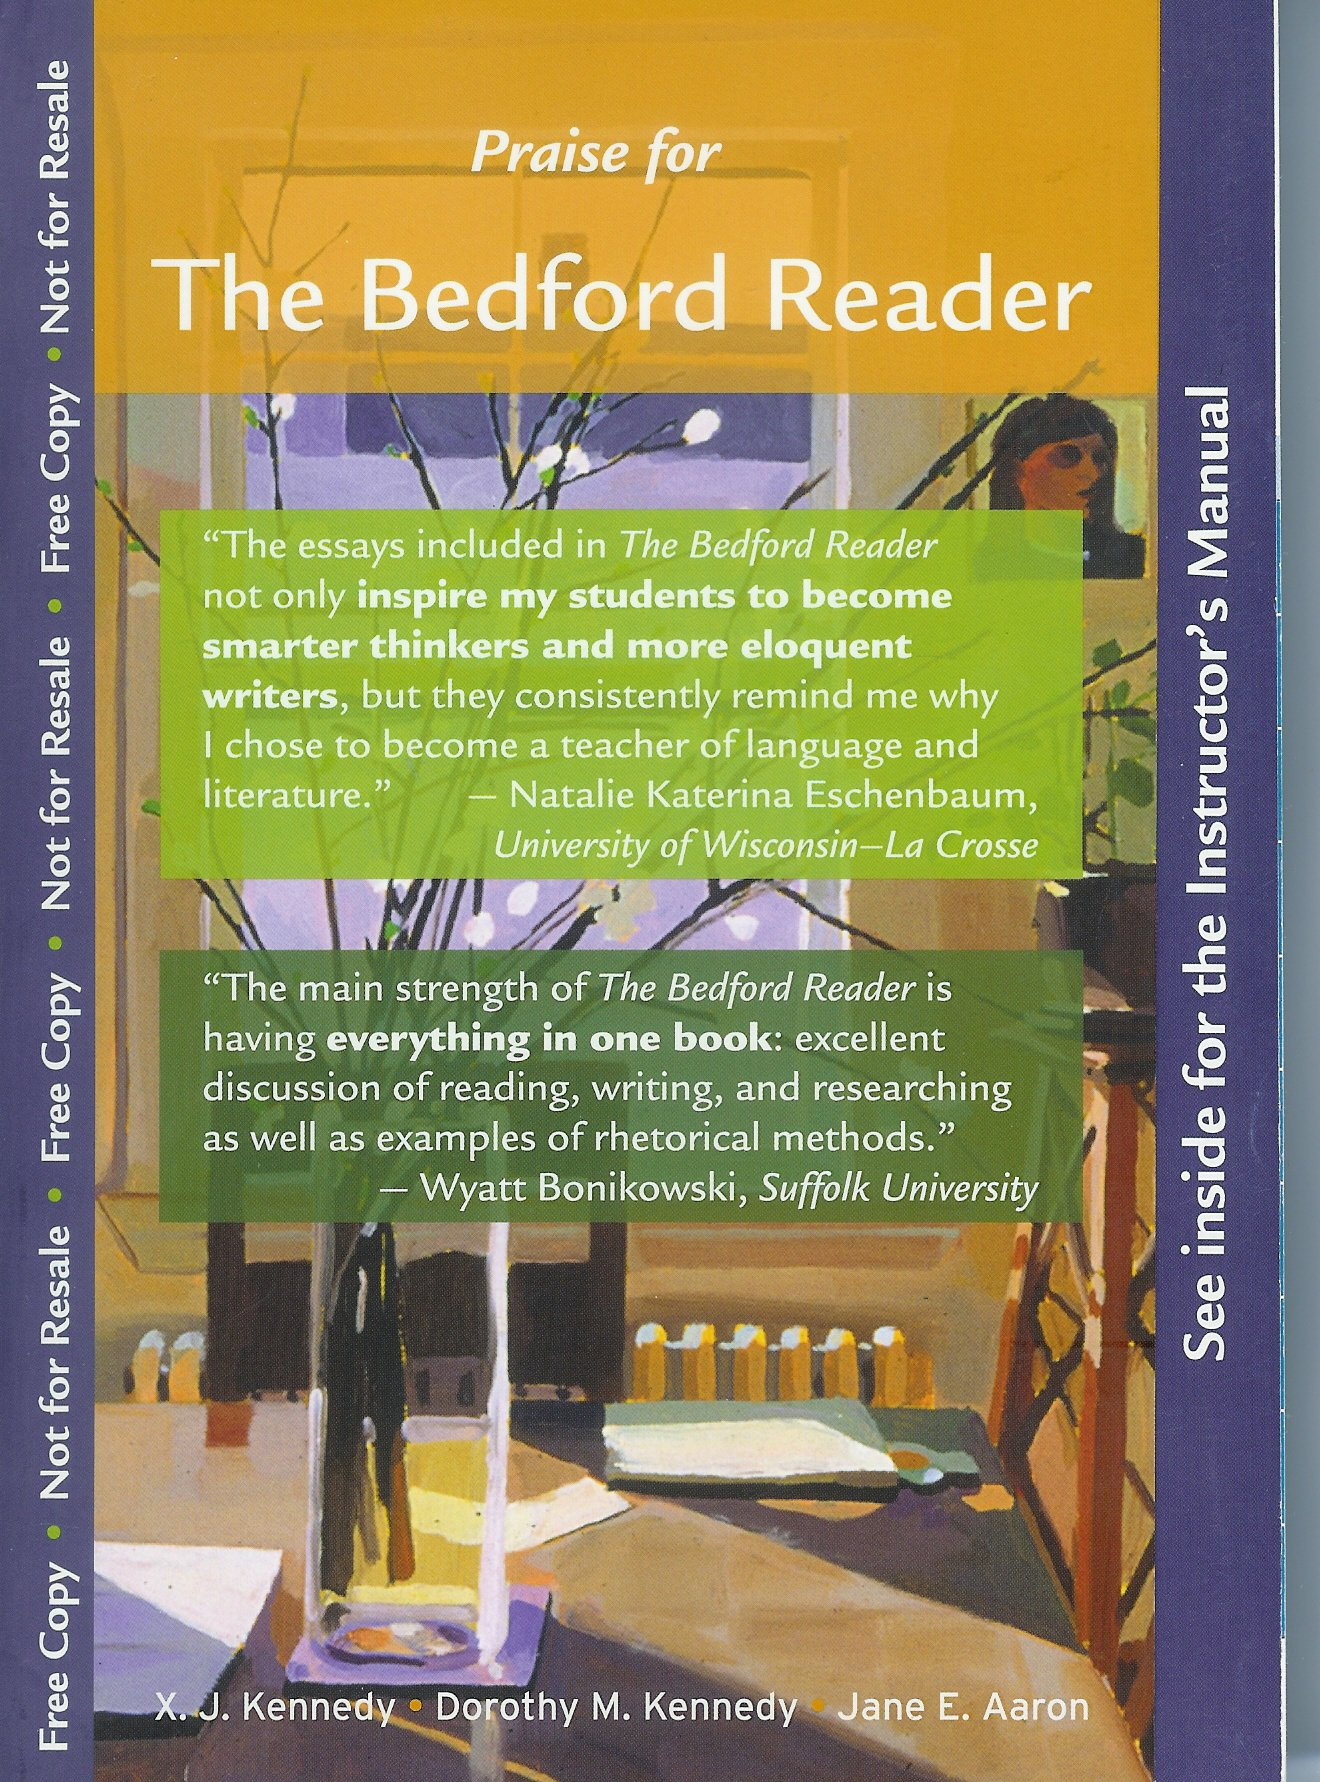 the bedford reader 11th edition download free ebooks about the bedford reader 11th edition or read online viewer